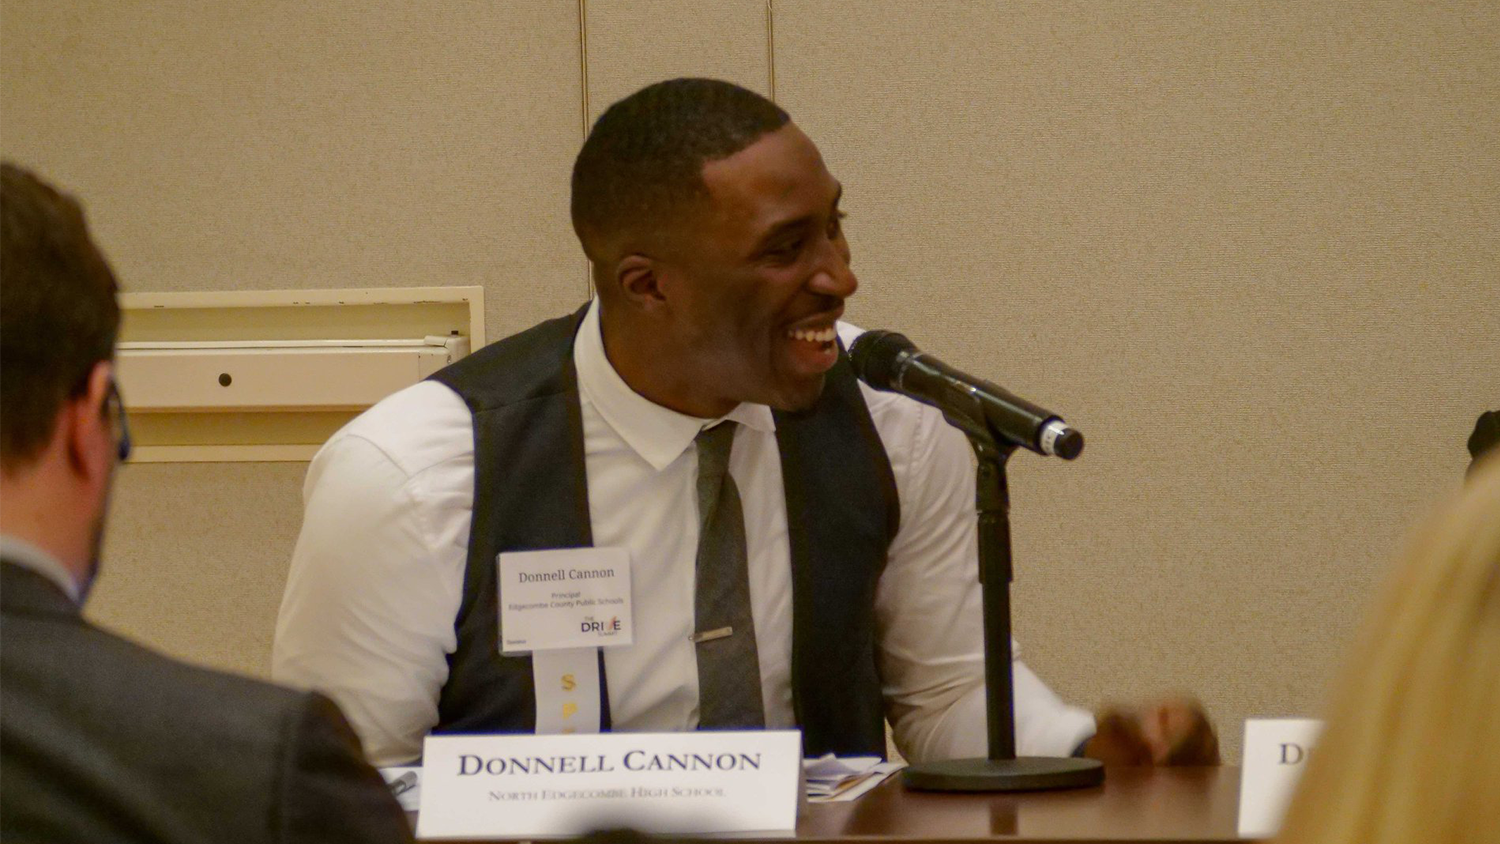 NELA alum Donnell Cannon spoke at the DRIVE Summit at NC State University